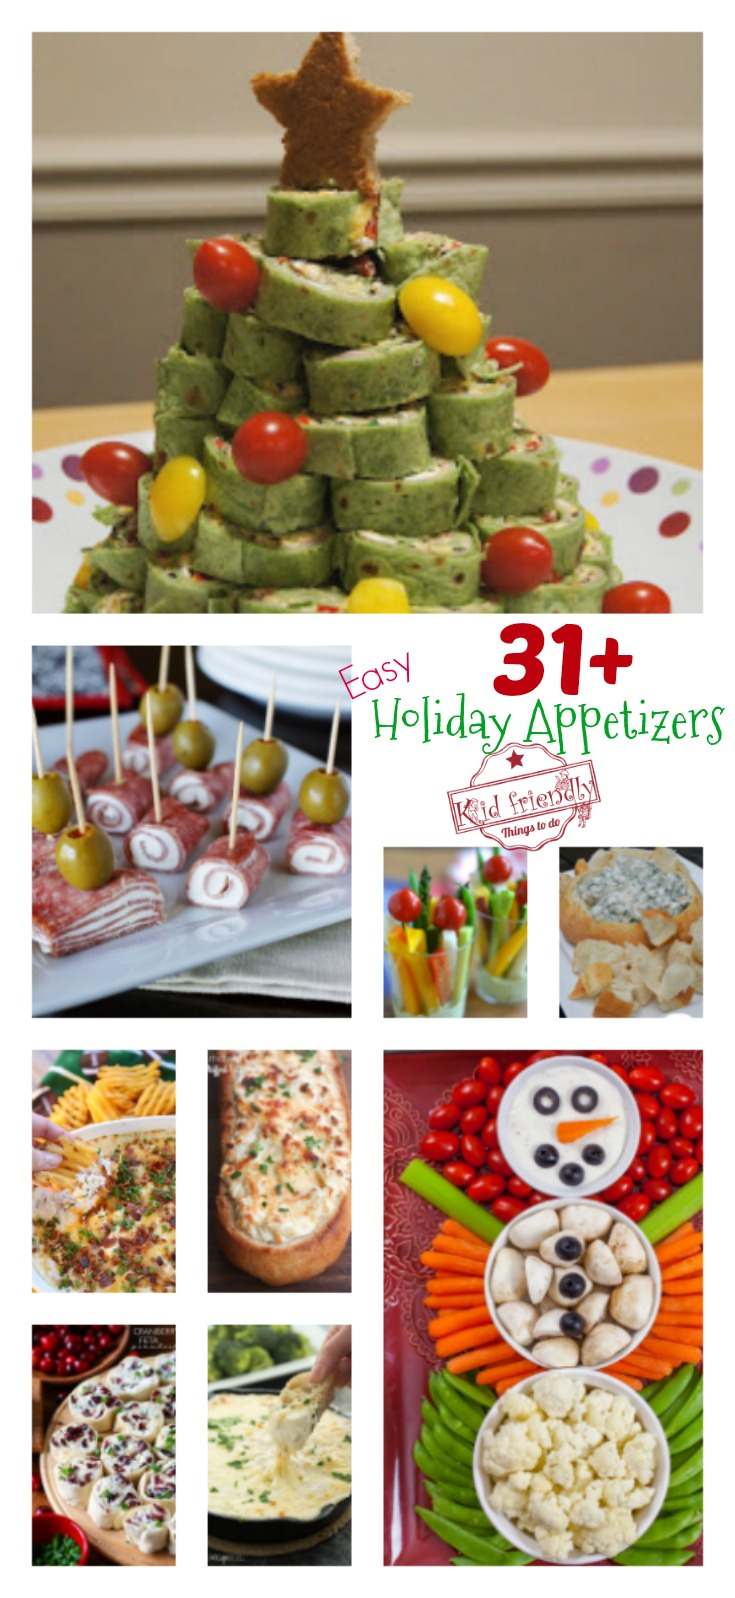 Over 31 Easy Holiday Appetizers to Make for Thanksgiving, Christmas, New Year's Eve, Super Bowl, etc... You get the idea. We need simple, crowd pleasing, make ahead, and delicious appetizers to feed the masses! Come on in and check out Over 31 Easy Holiday Appetizers to Make for Christmas, New Year's Eve and All of Your Parties Simple and Delicious!... www.kidfriendlythingstodo.com